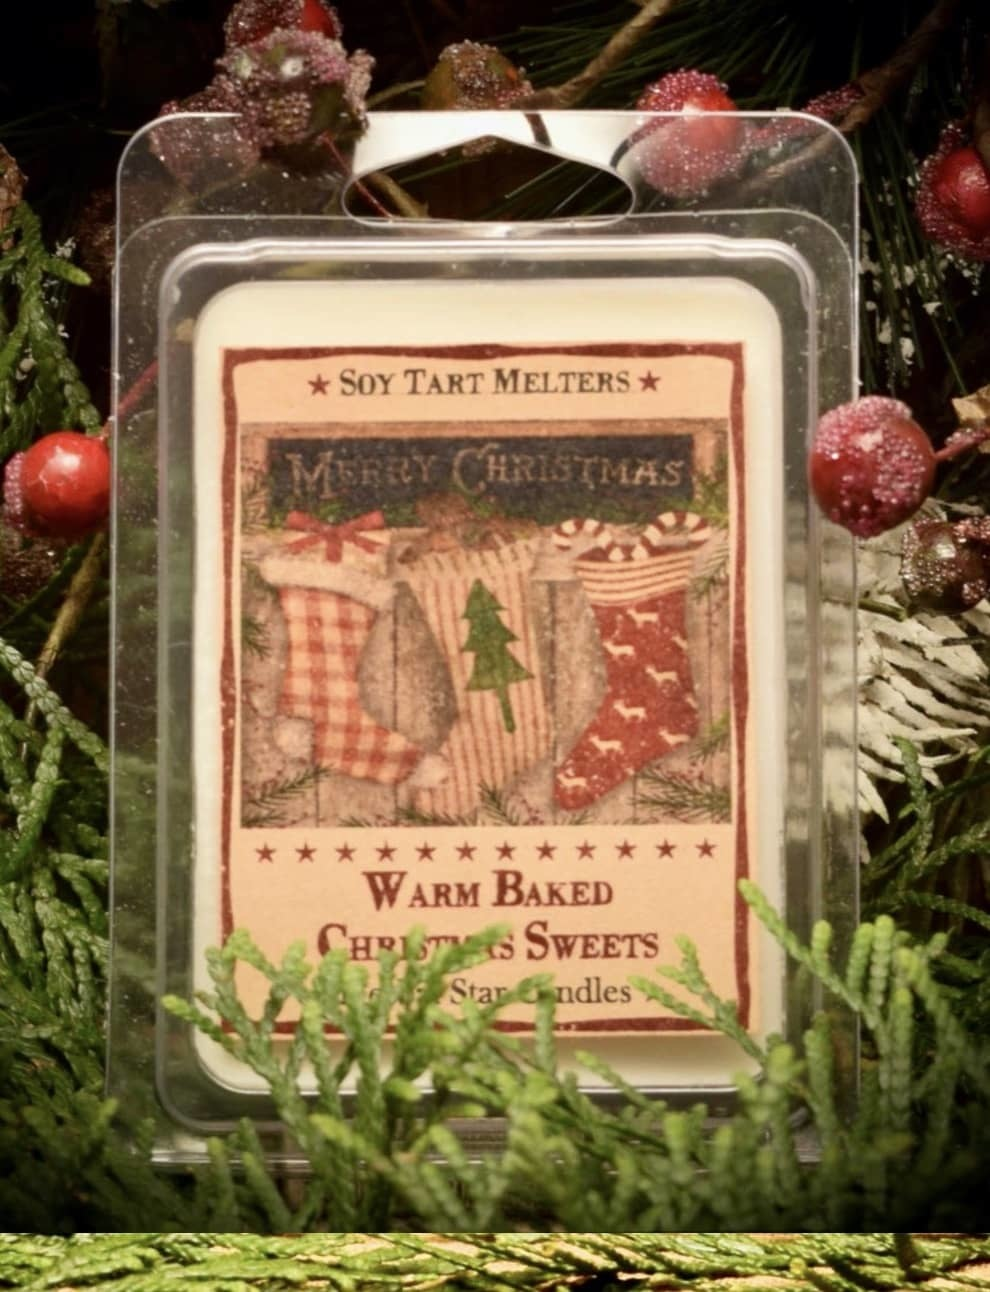 Herbal Star Candles Warm Baked Christmas Sweets Mini Pack of Tarts